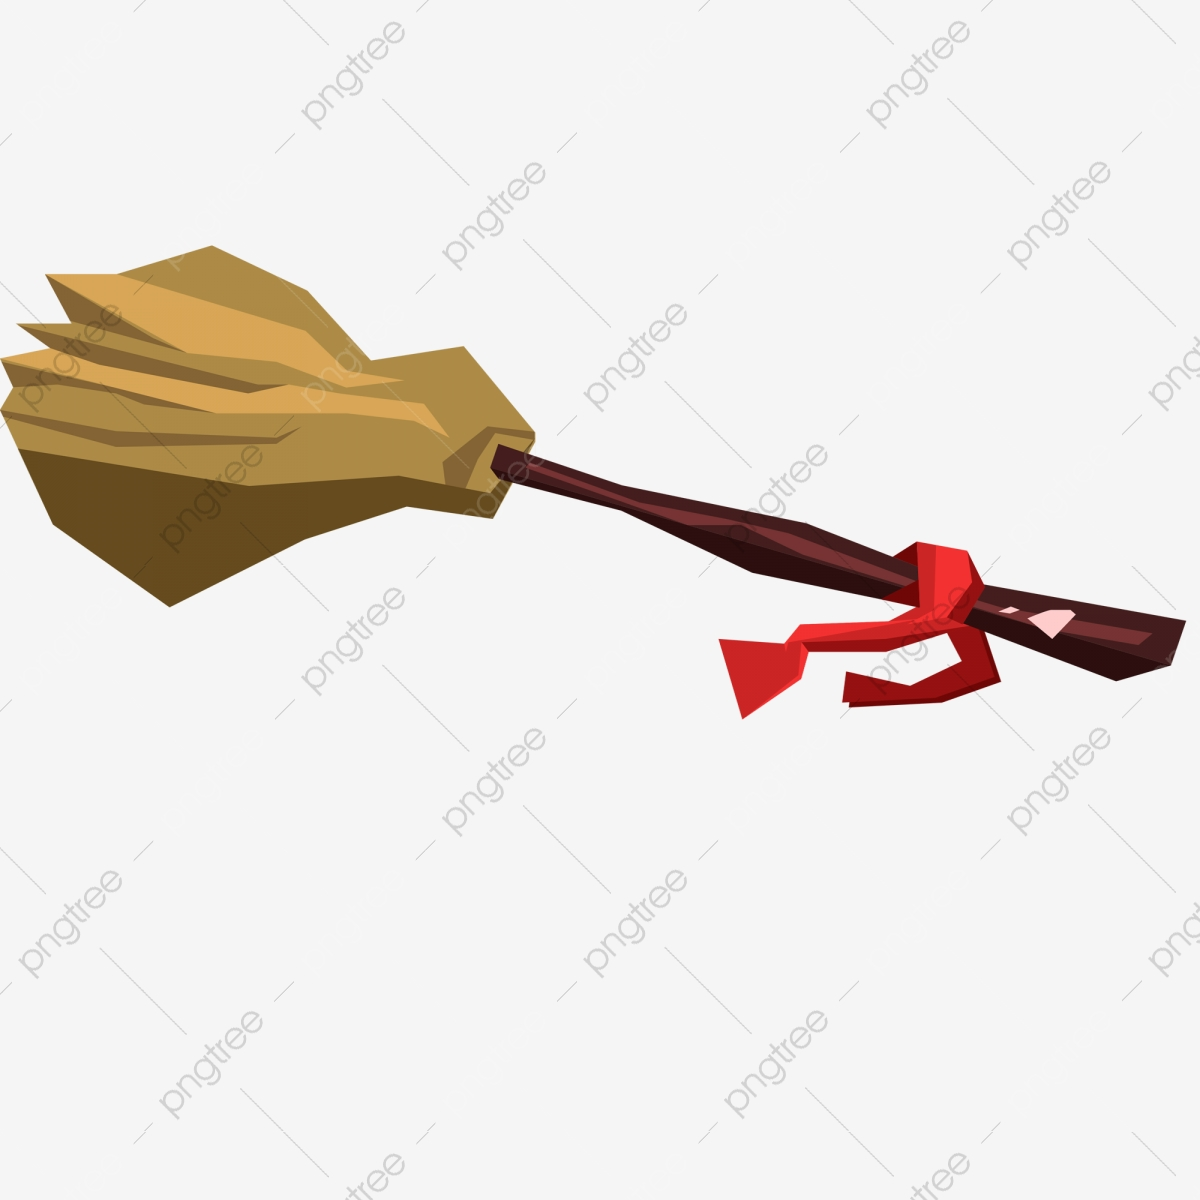 harry potter broom magic broom harry potter png and vector with transparent background for free download https pngtree com freepng harry potter broom 220520 html